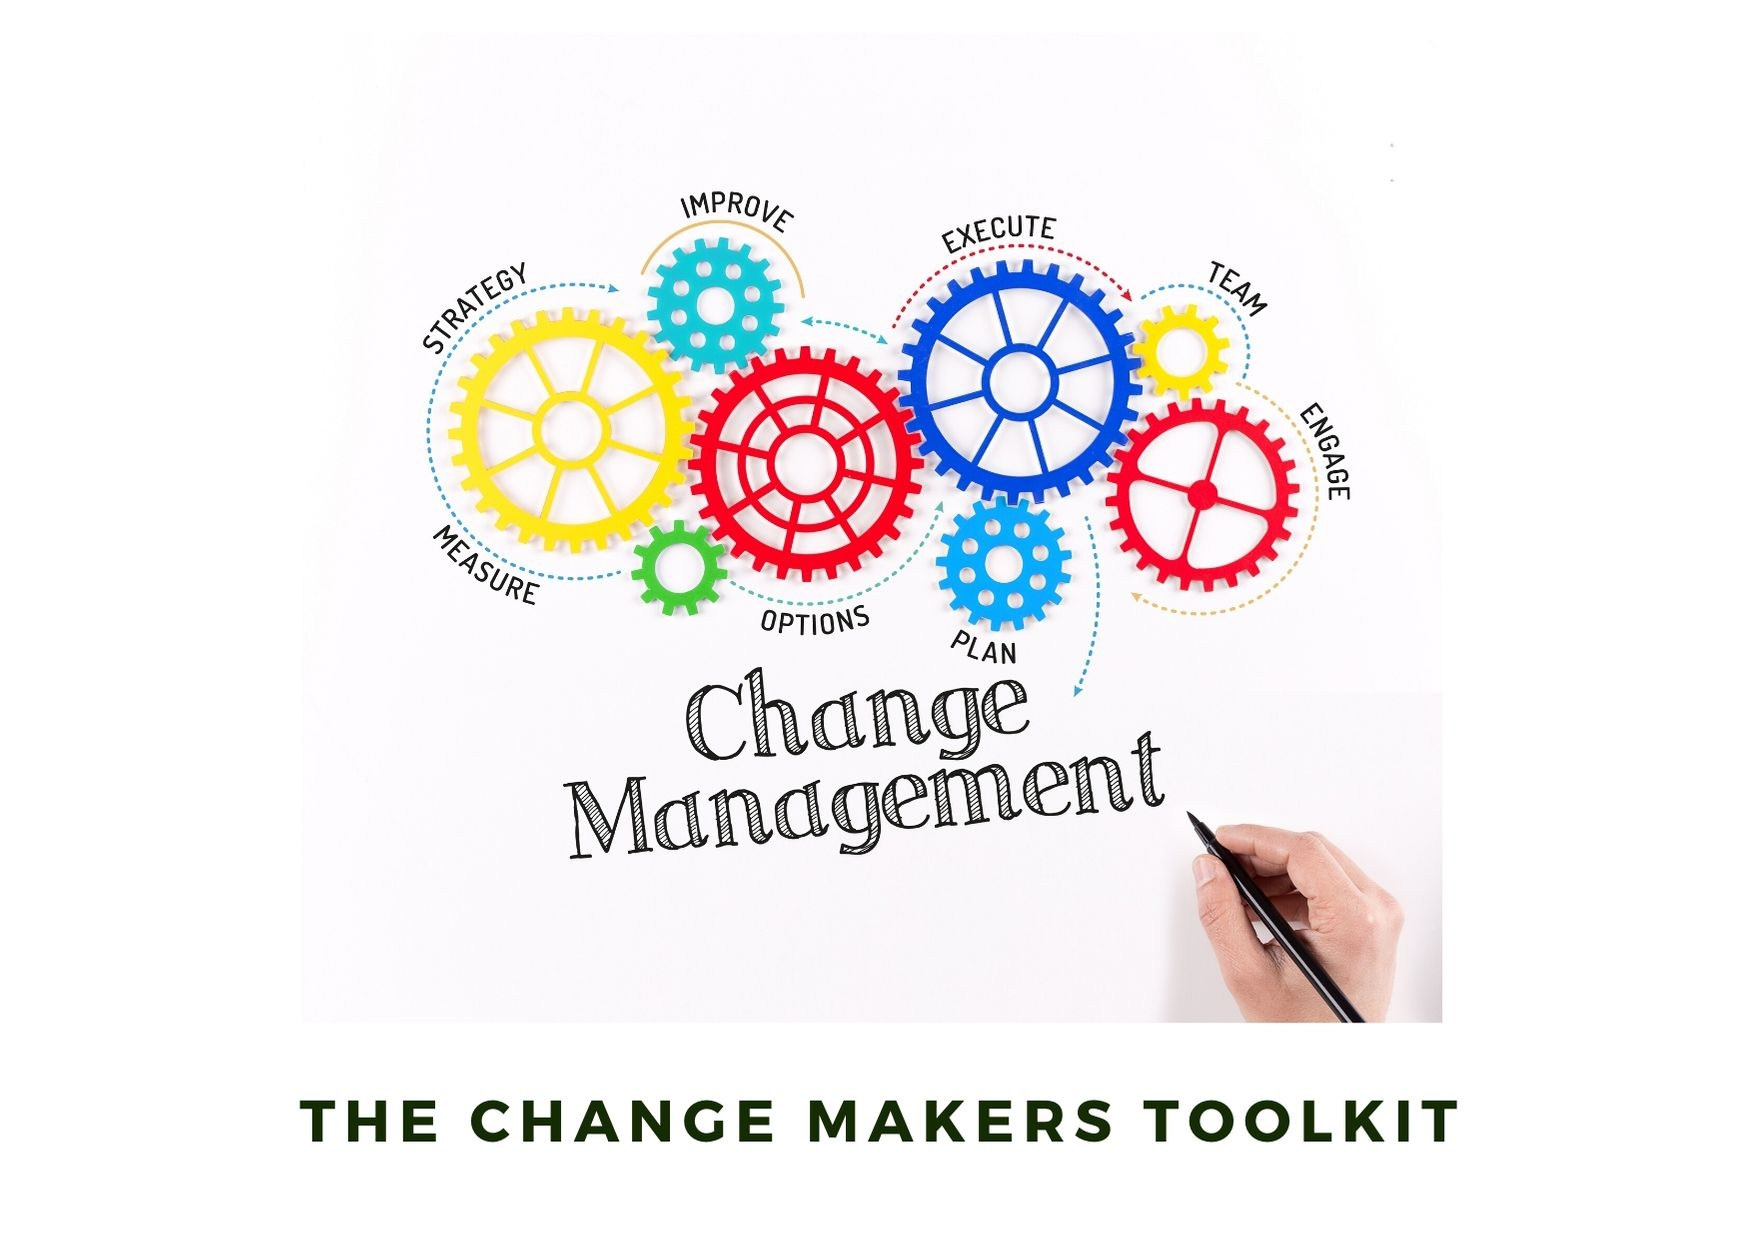 The Change Makers Toolkit